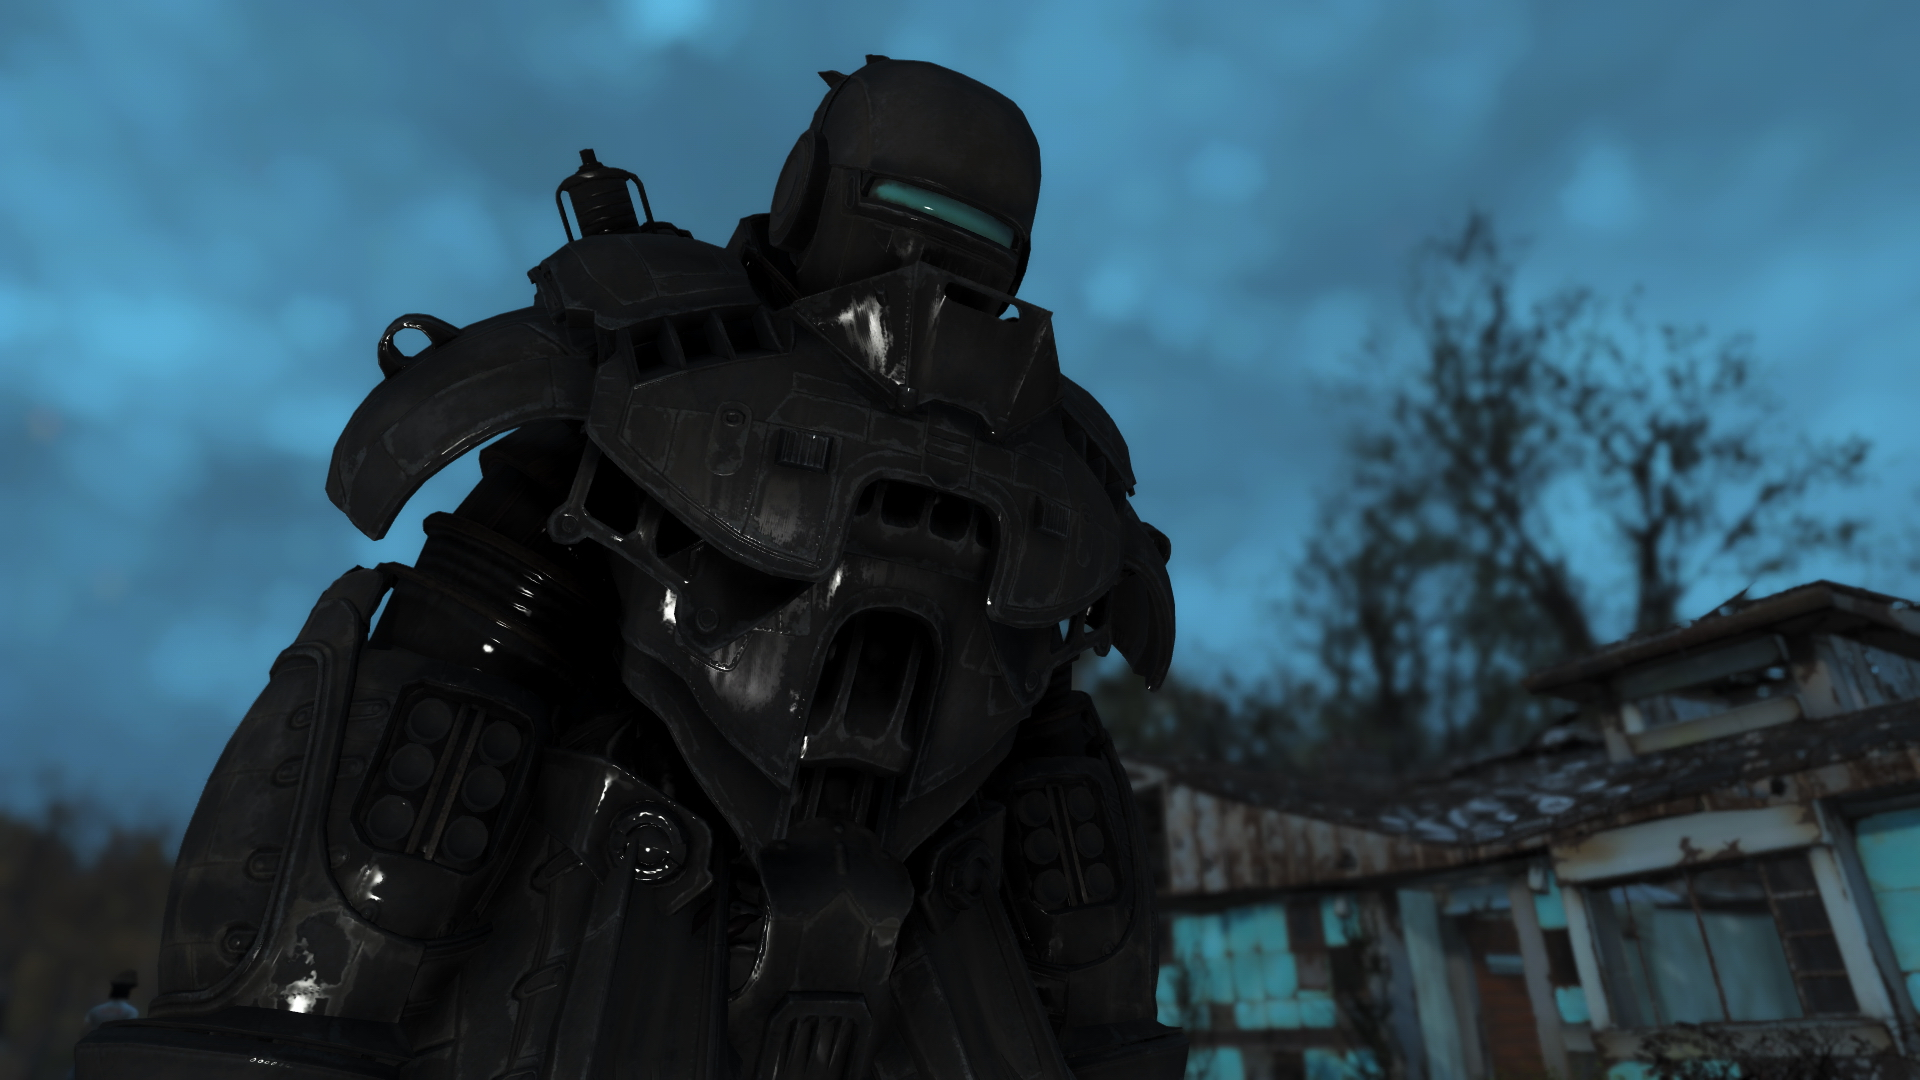 Fallout 4 Beautification Project 3 55   Tore Andersen on Patreon